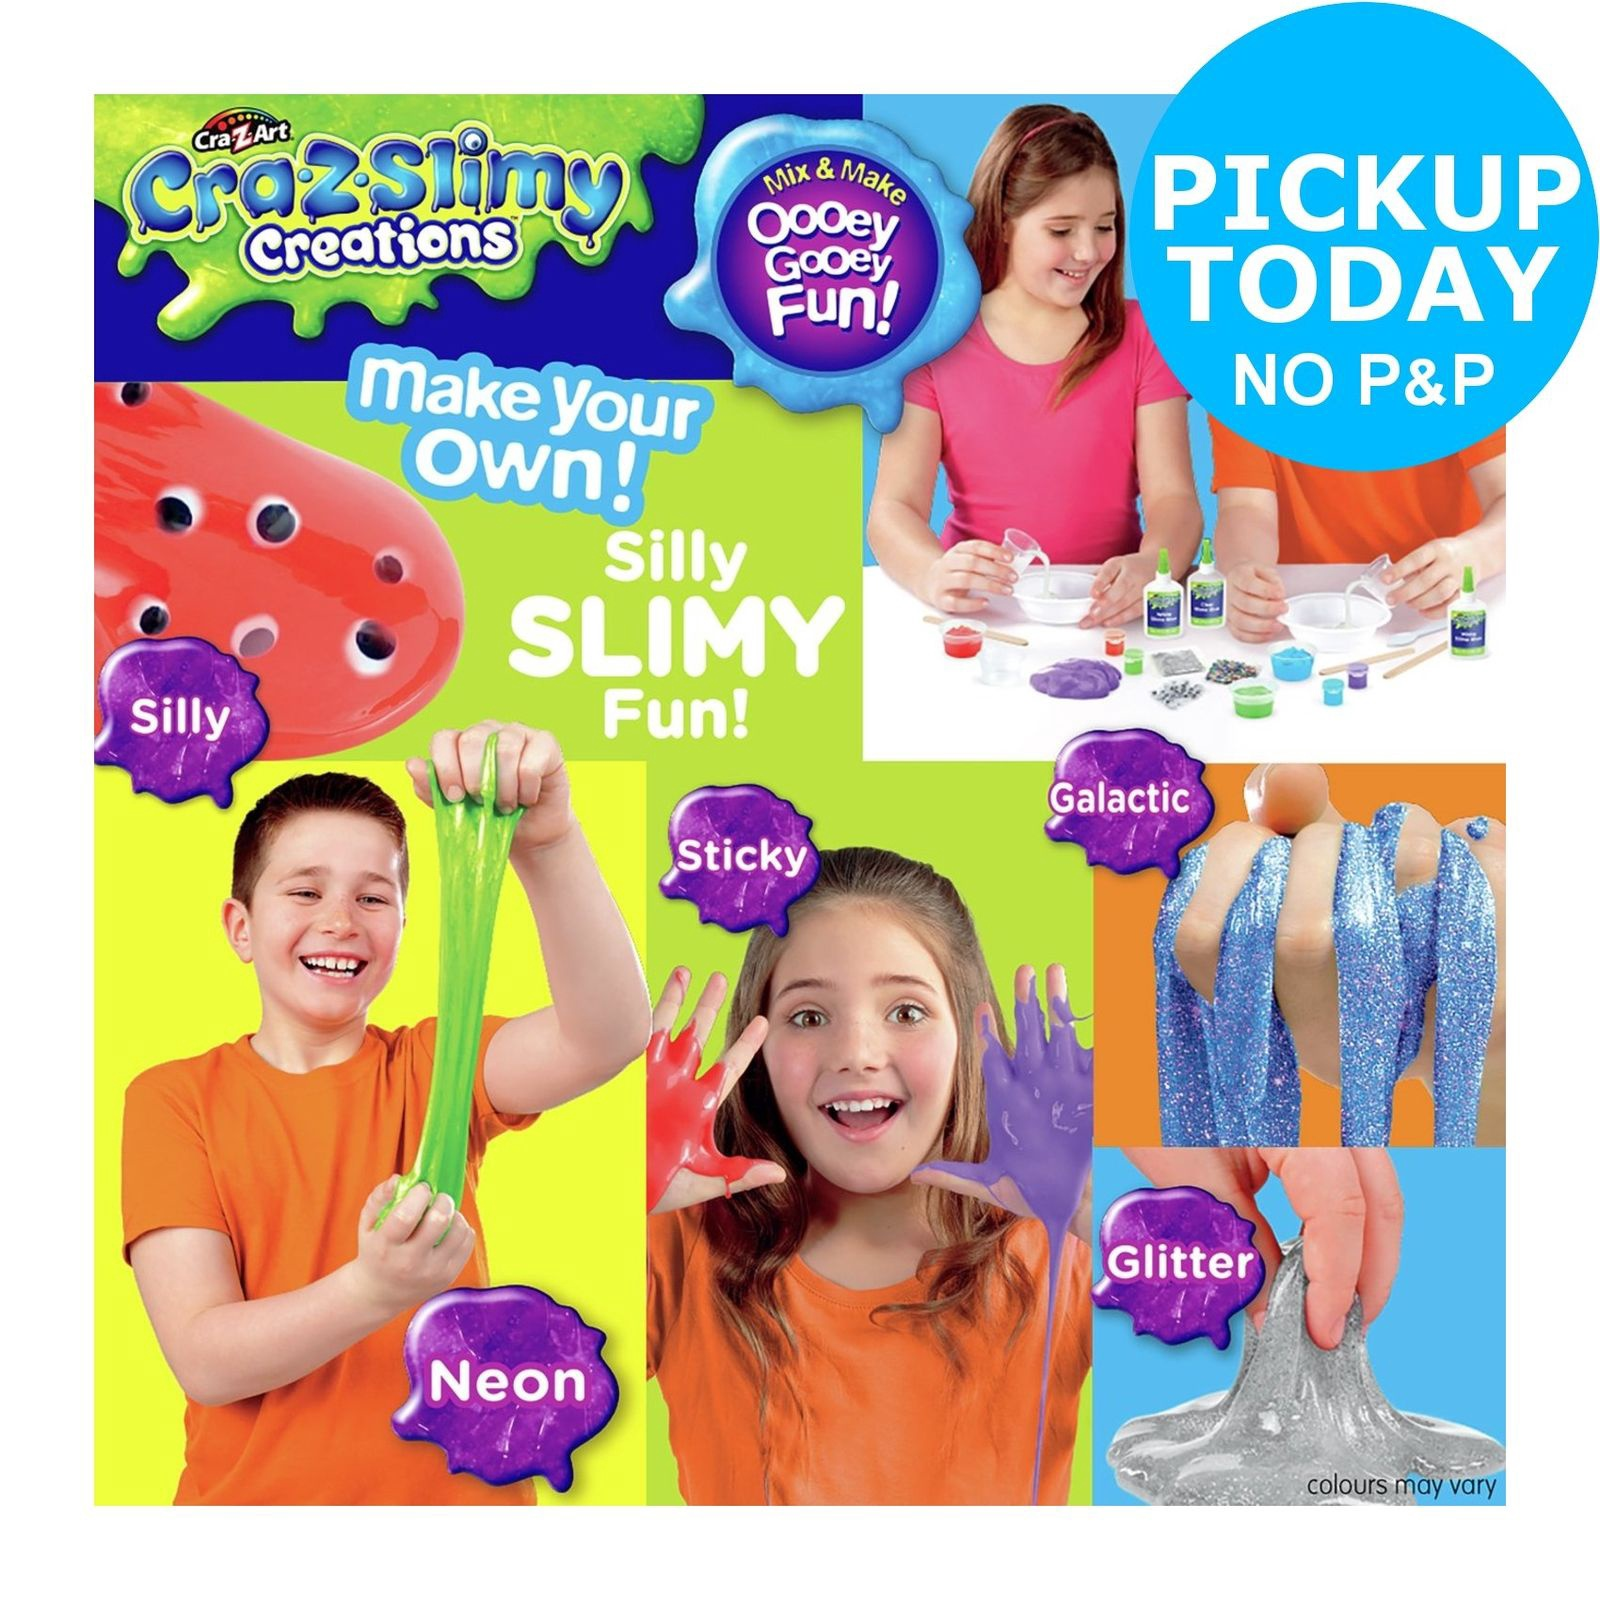 CRA-Z-SLIMY CREATIONS - SILLY SLIMY FUN!